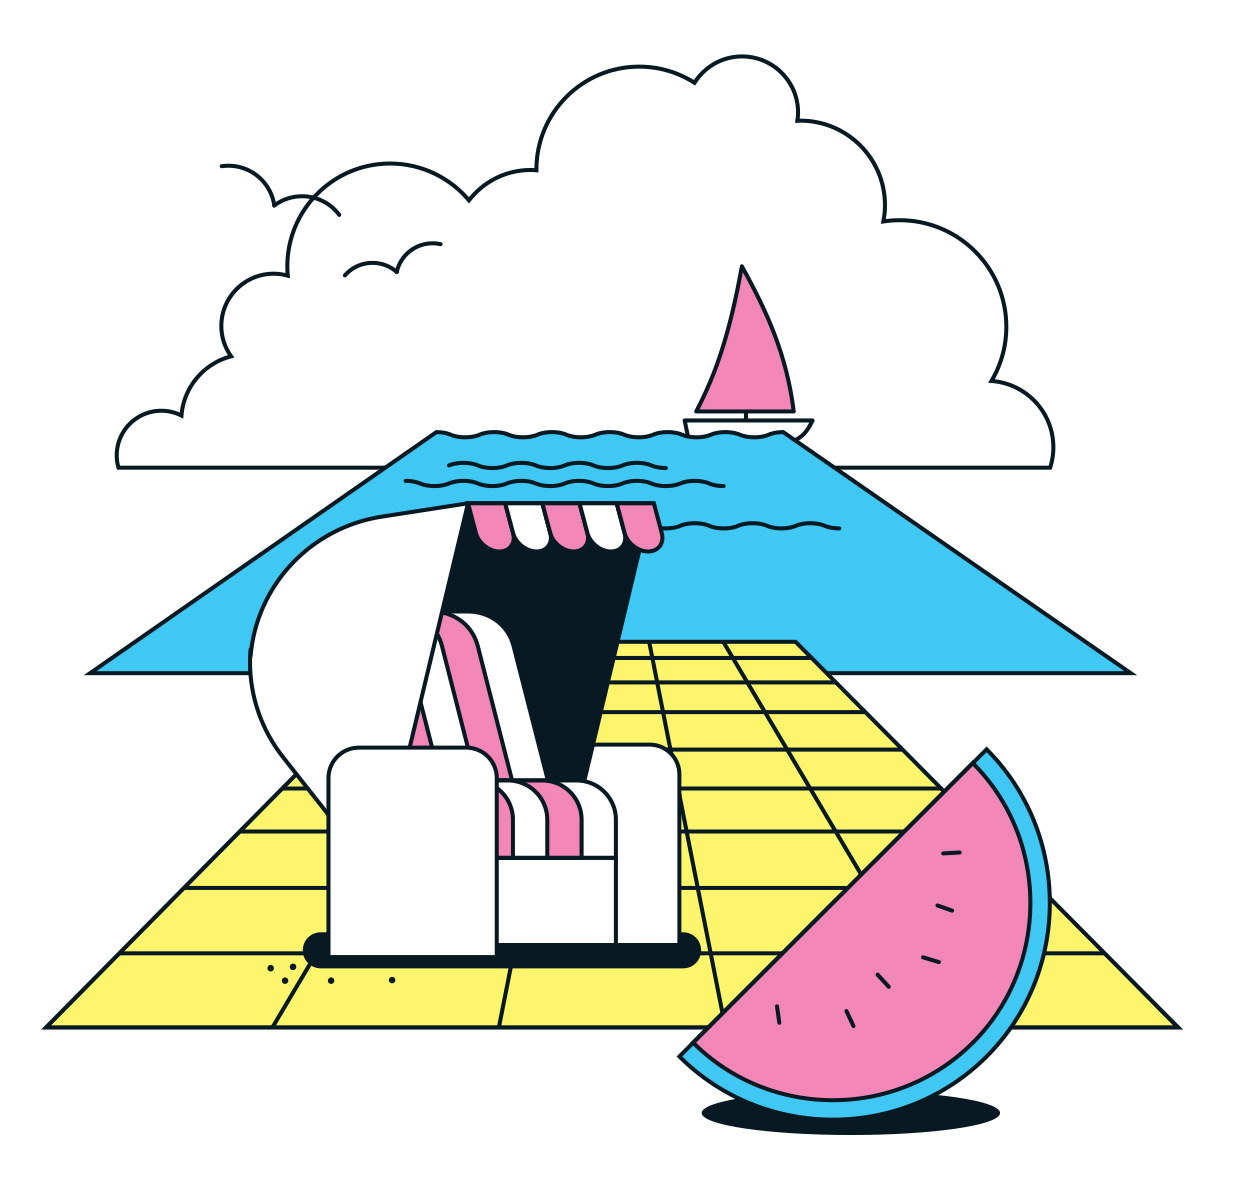 Abstract beach scene with melon and seagulls in retro style. Illustration by Axel Pfaender for Deutsche Bahn.